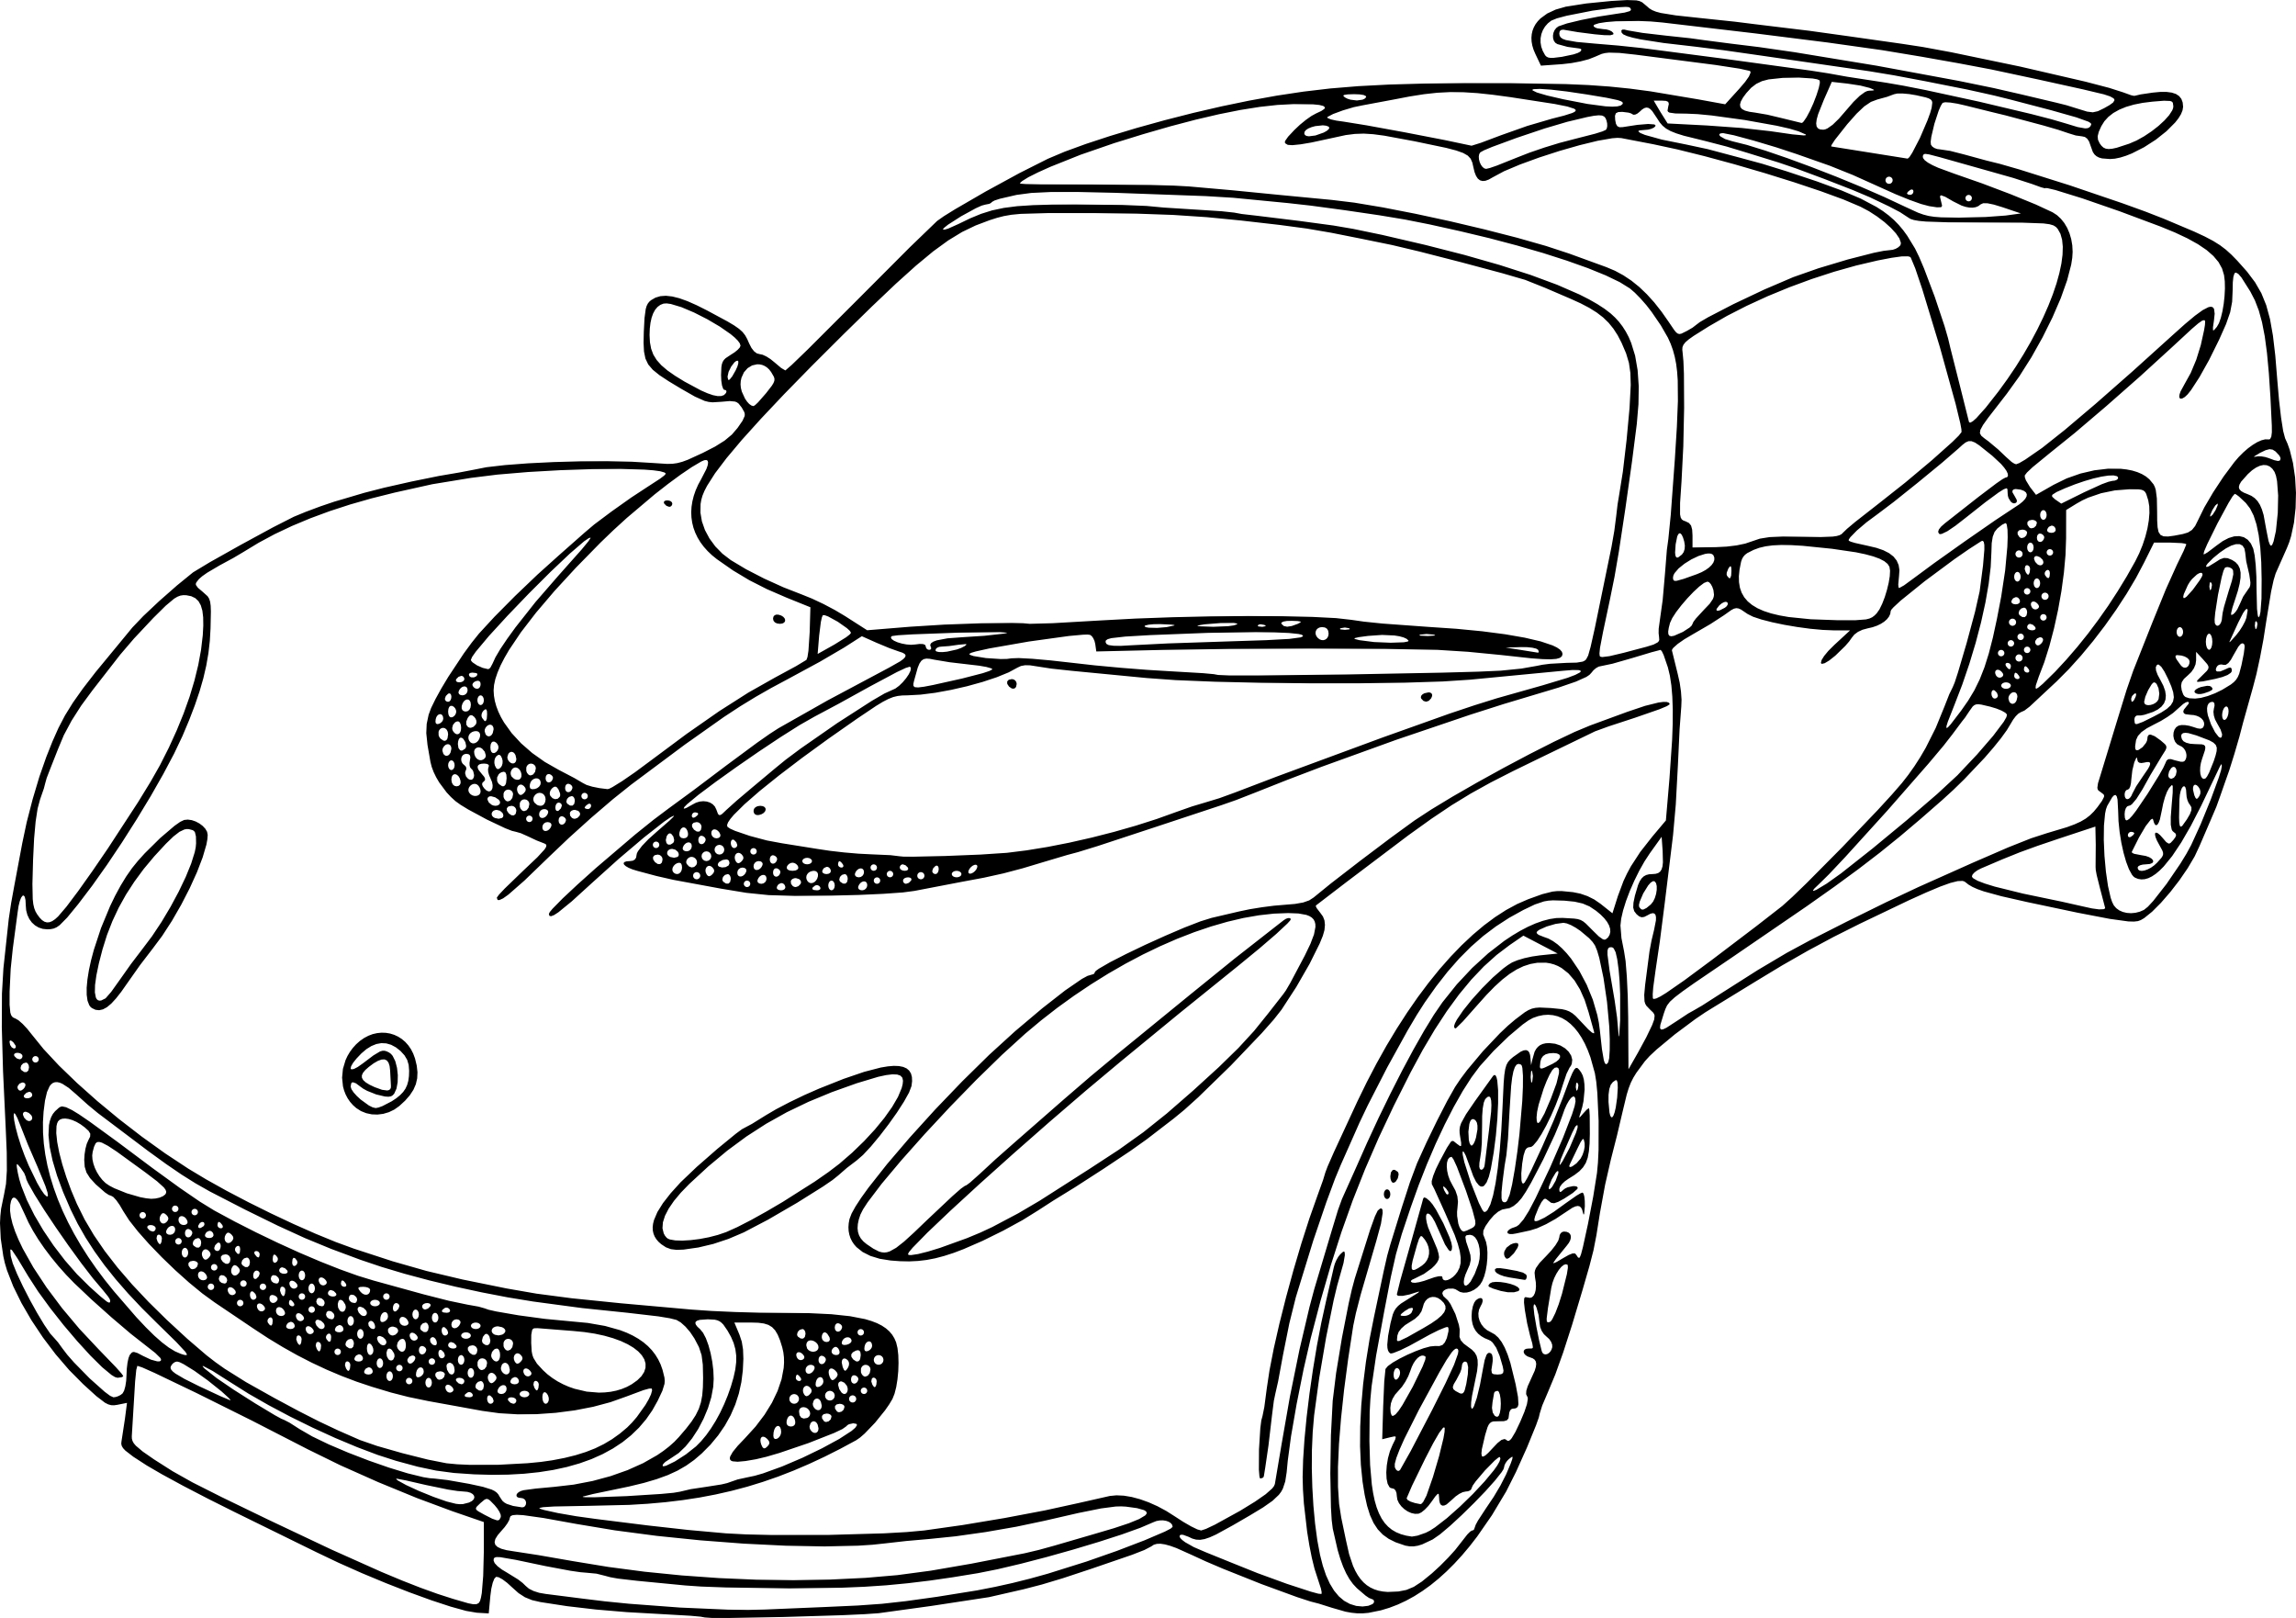 Excellent Coloriage Voiture 64 sur Coloriage Pages for Coloriage Voiture